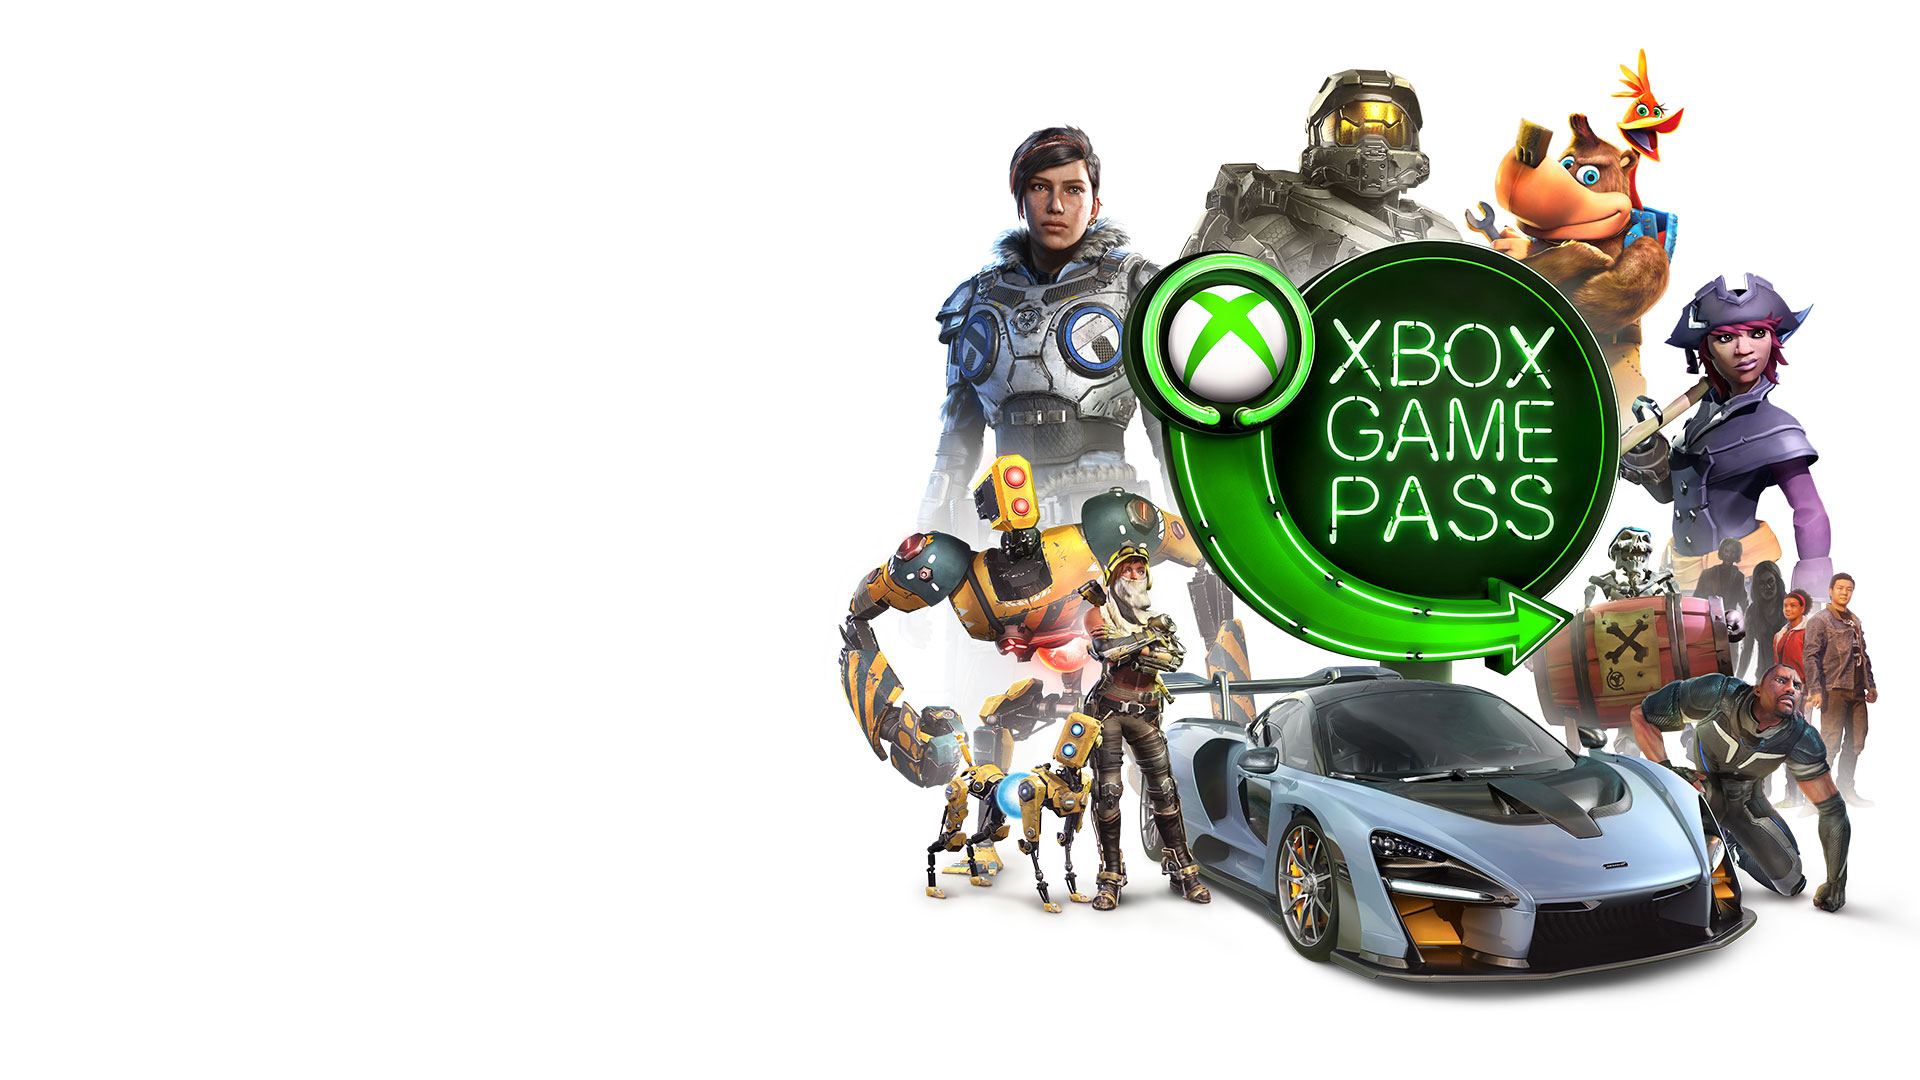 Xbox Game Pass 標誌由 Master Chief、Banjo 和 Kazooie、Sea of Thieves 海盜和 Recore 角色等 Xbox 角色所圍繞